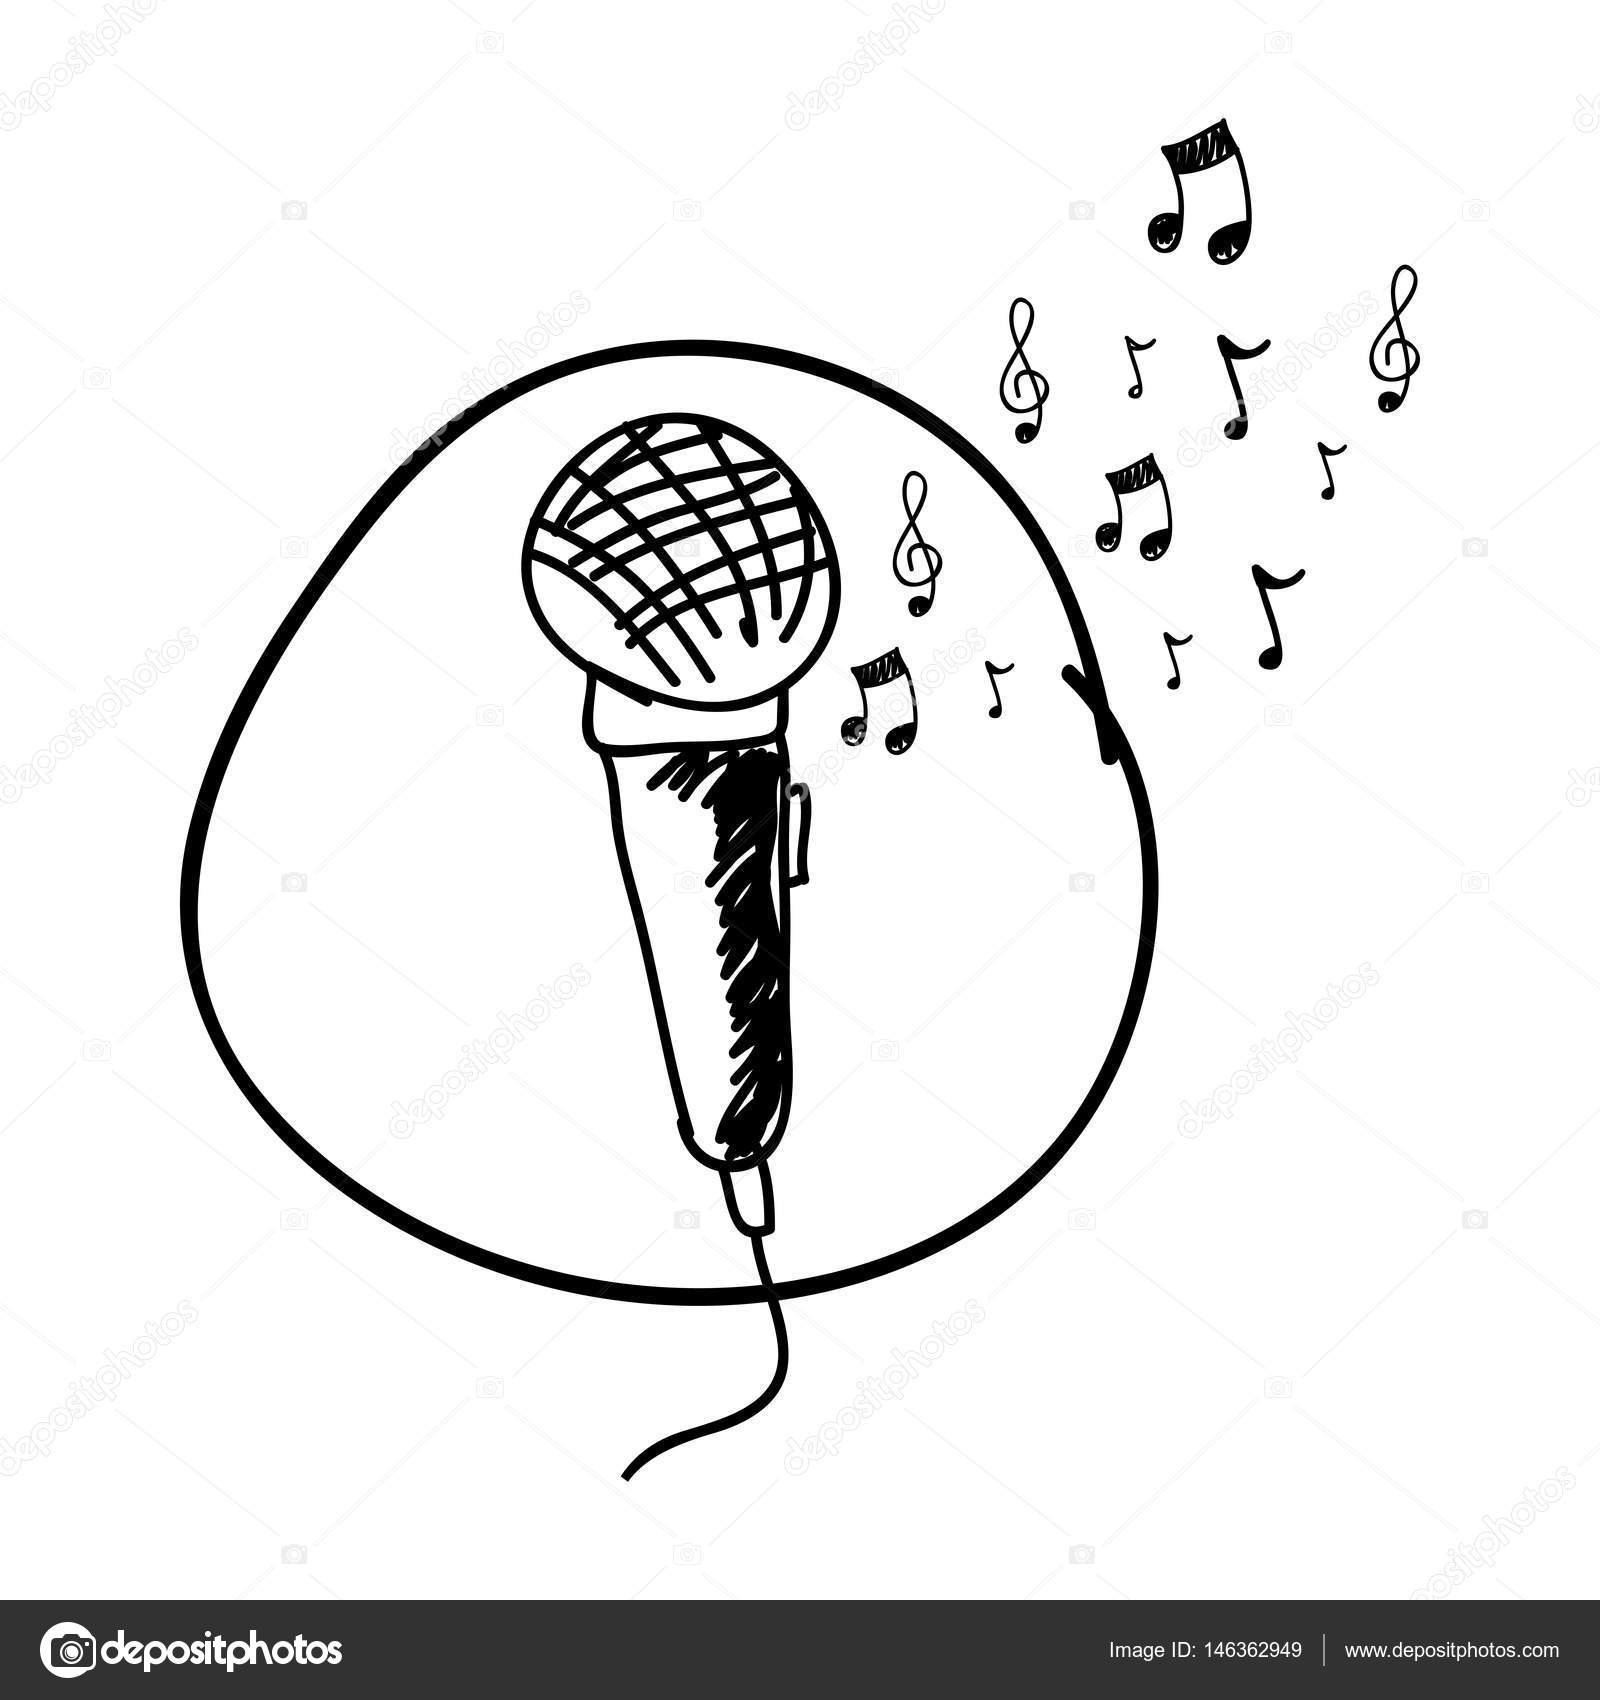 Microphone Line Drawing At Getdrawings